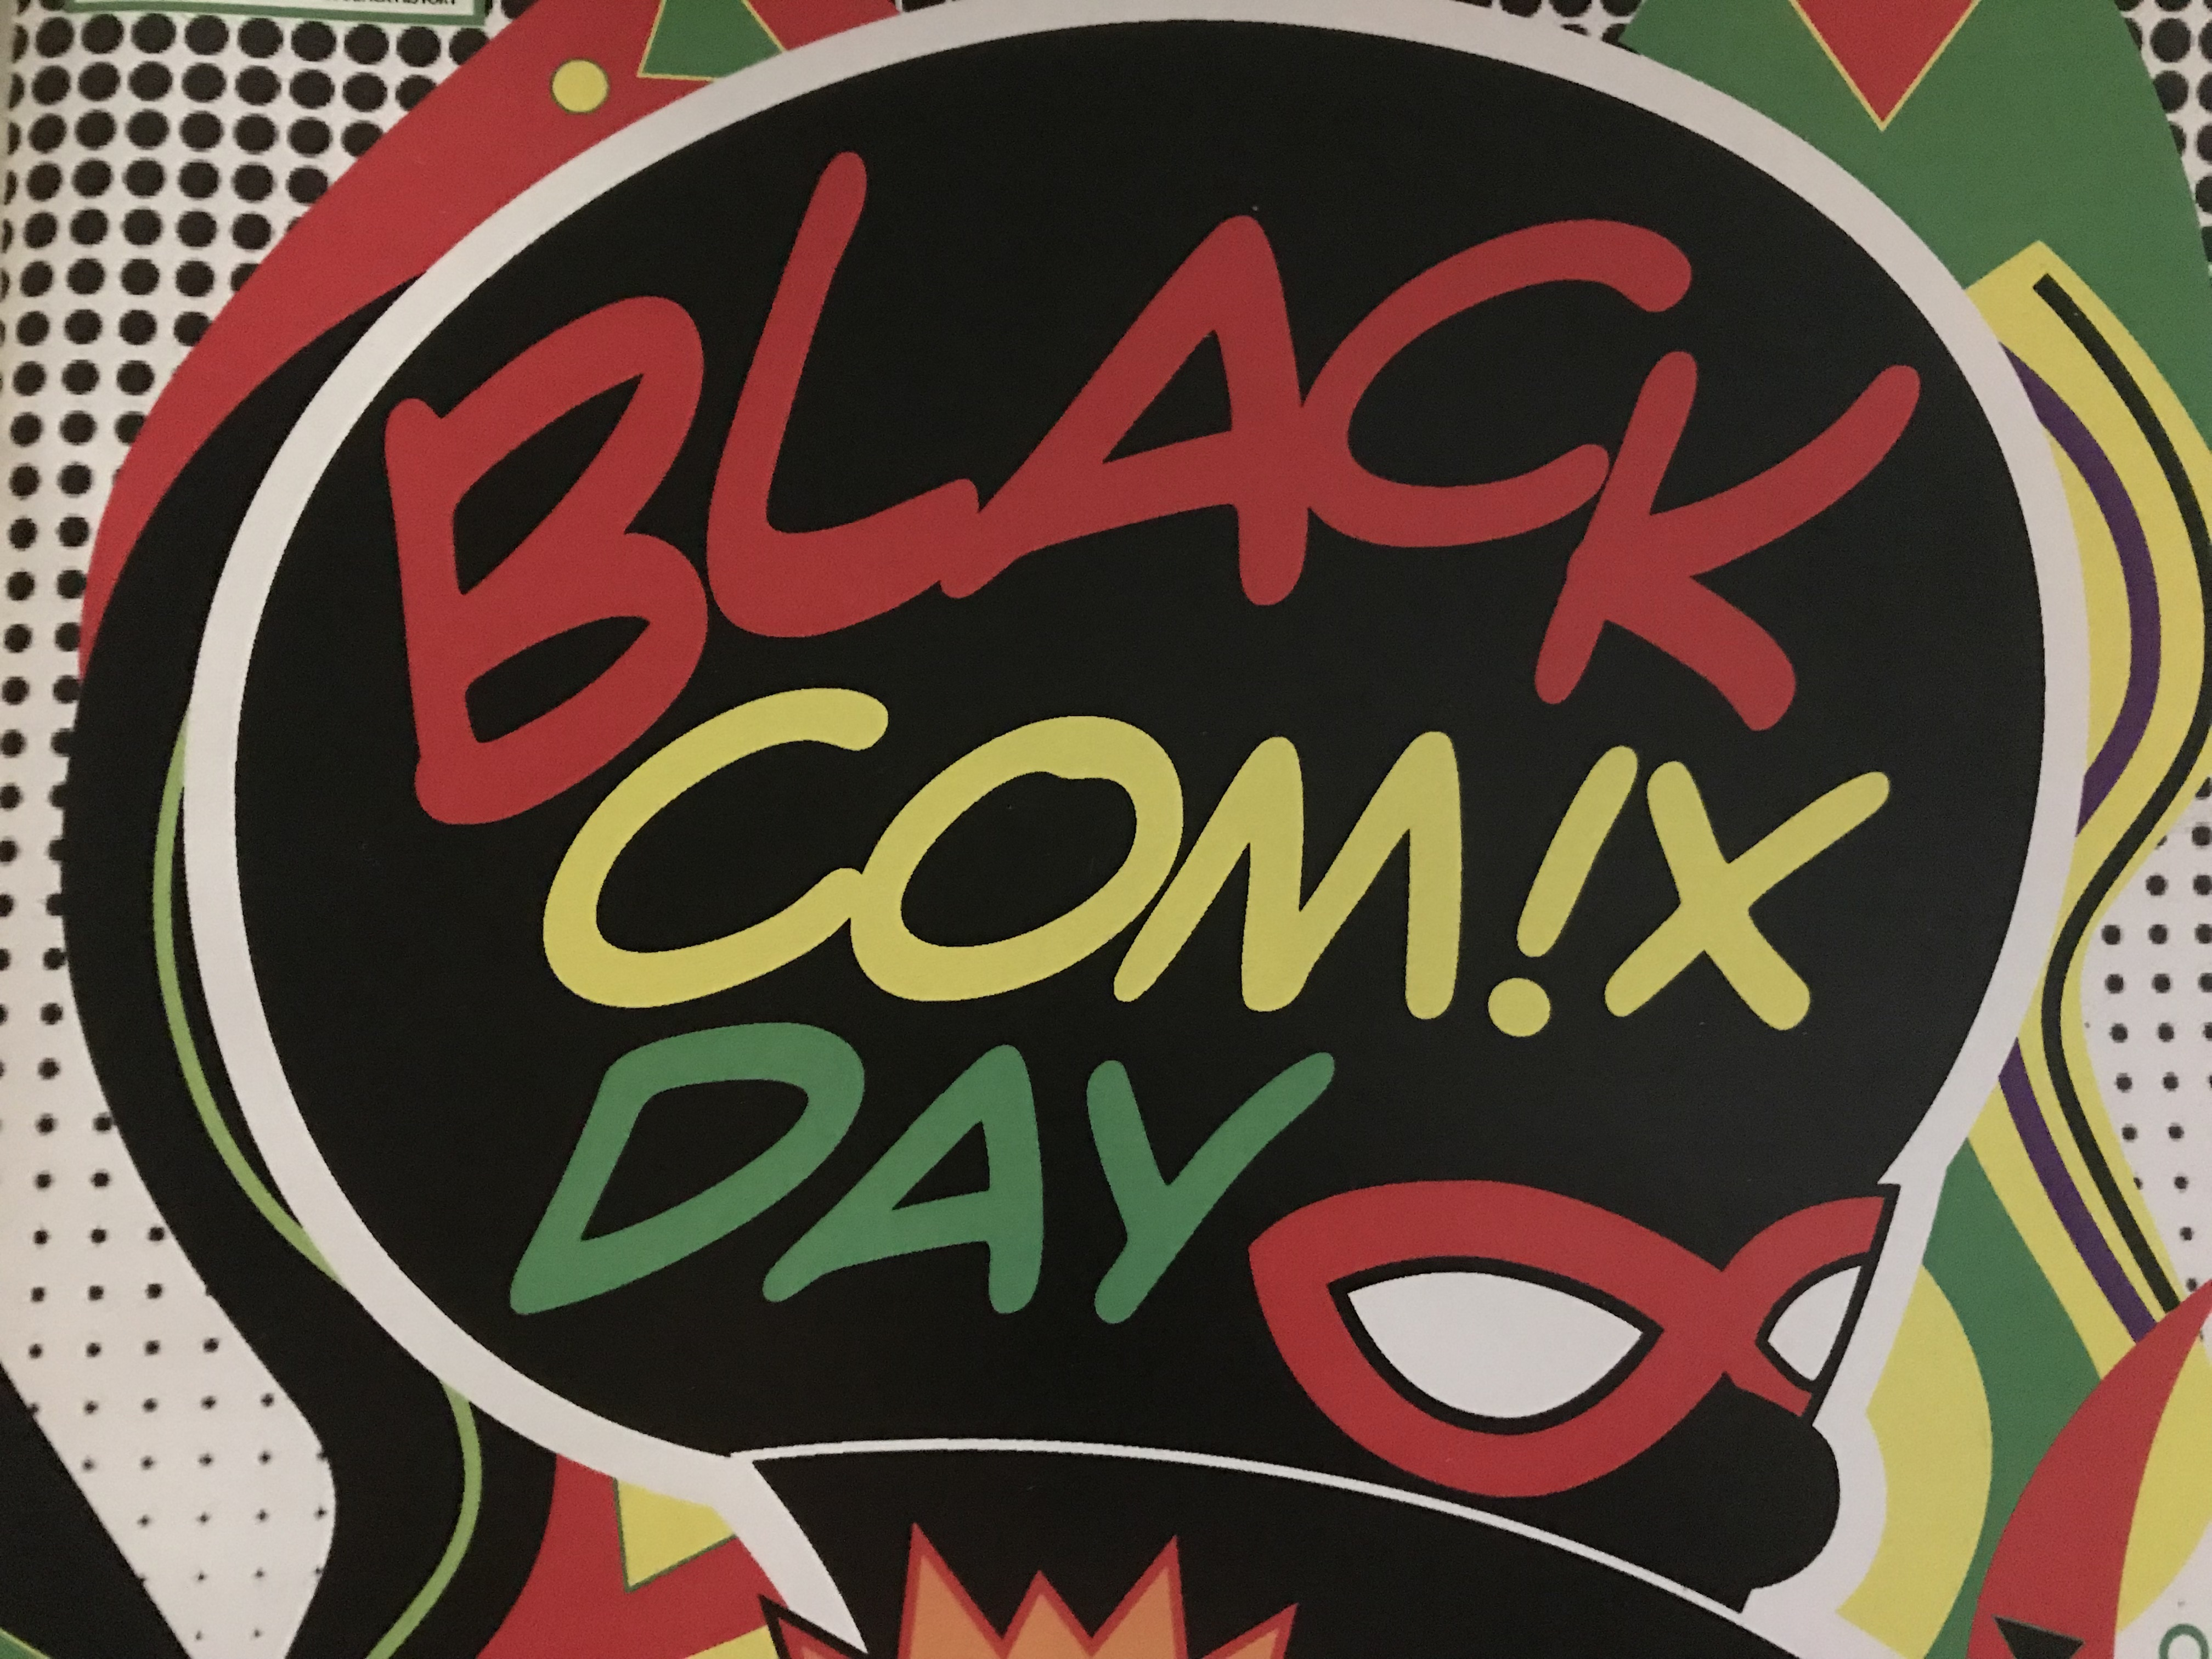 inaugural black comix day celebrates independent black artists and